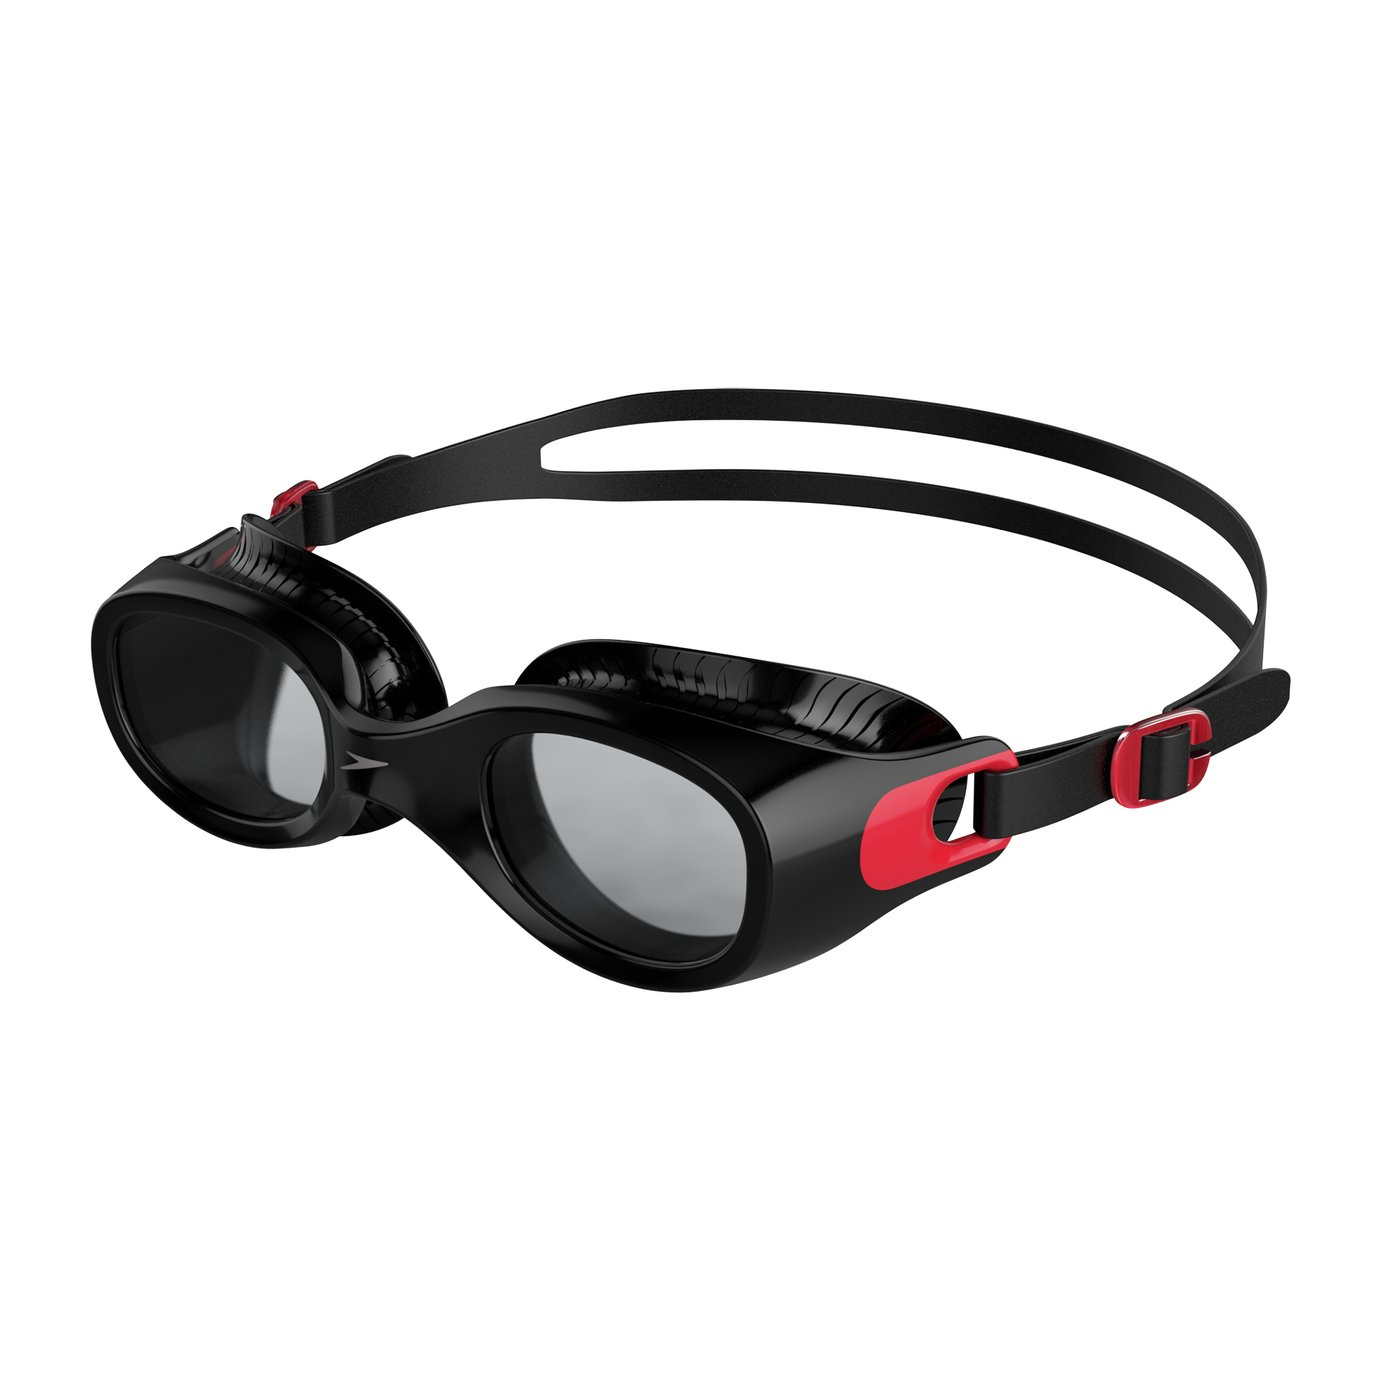 Speedo Futura Classic Goggles - Pink & Clear from speedo